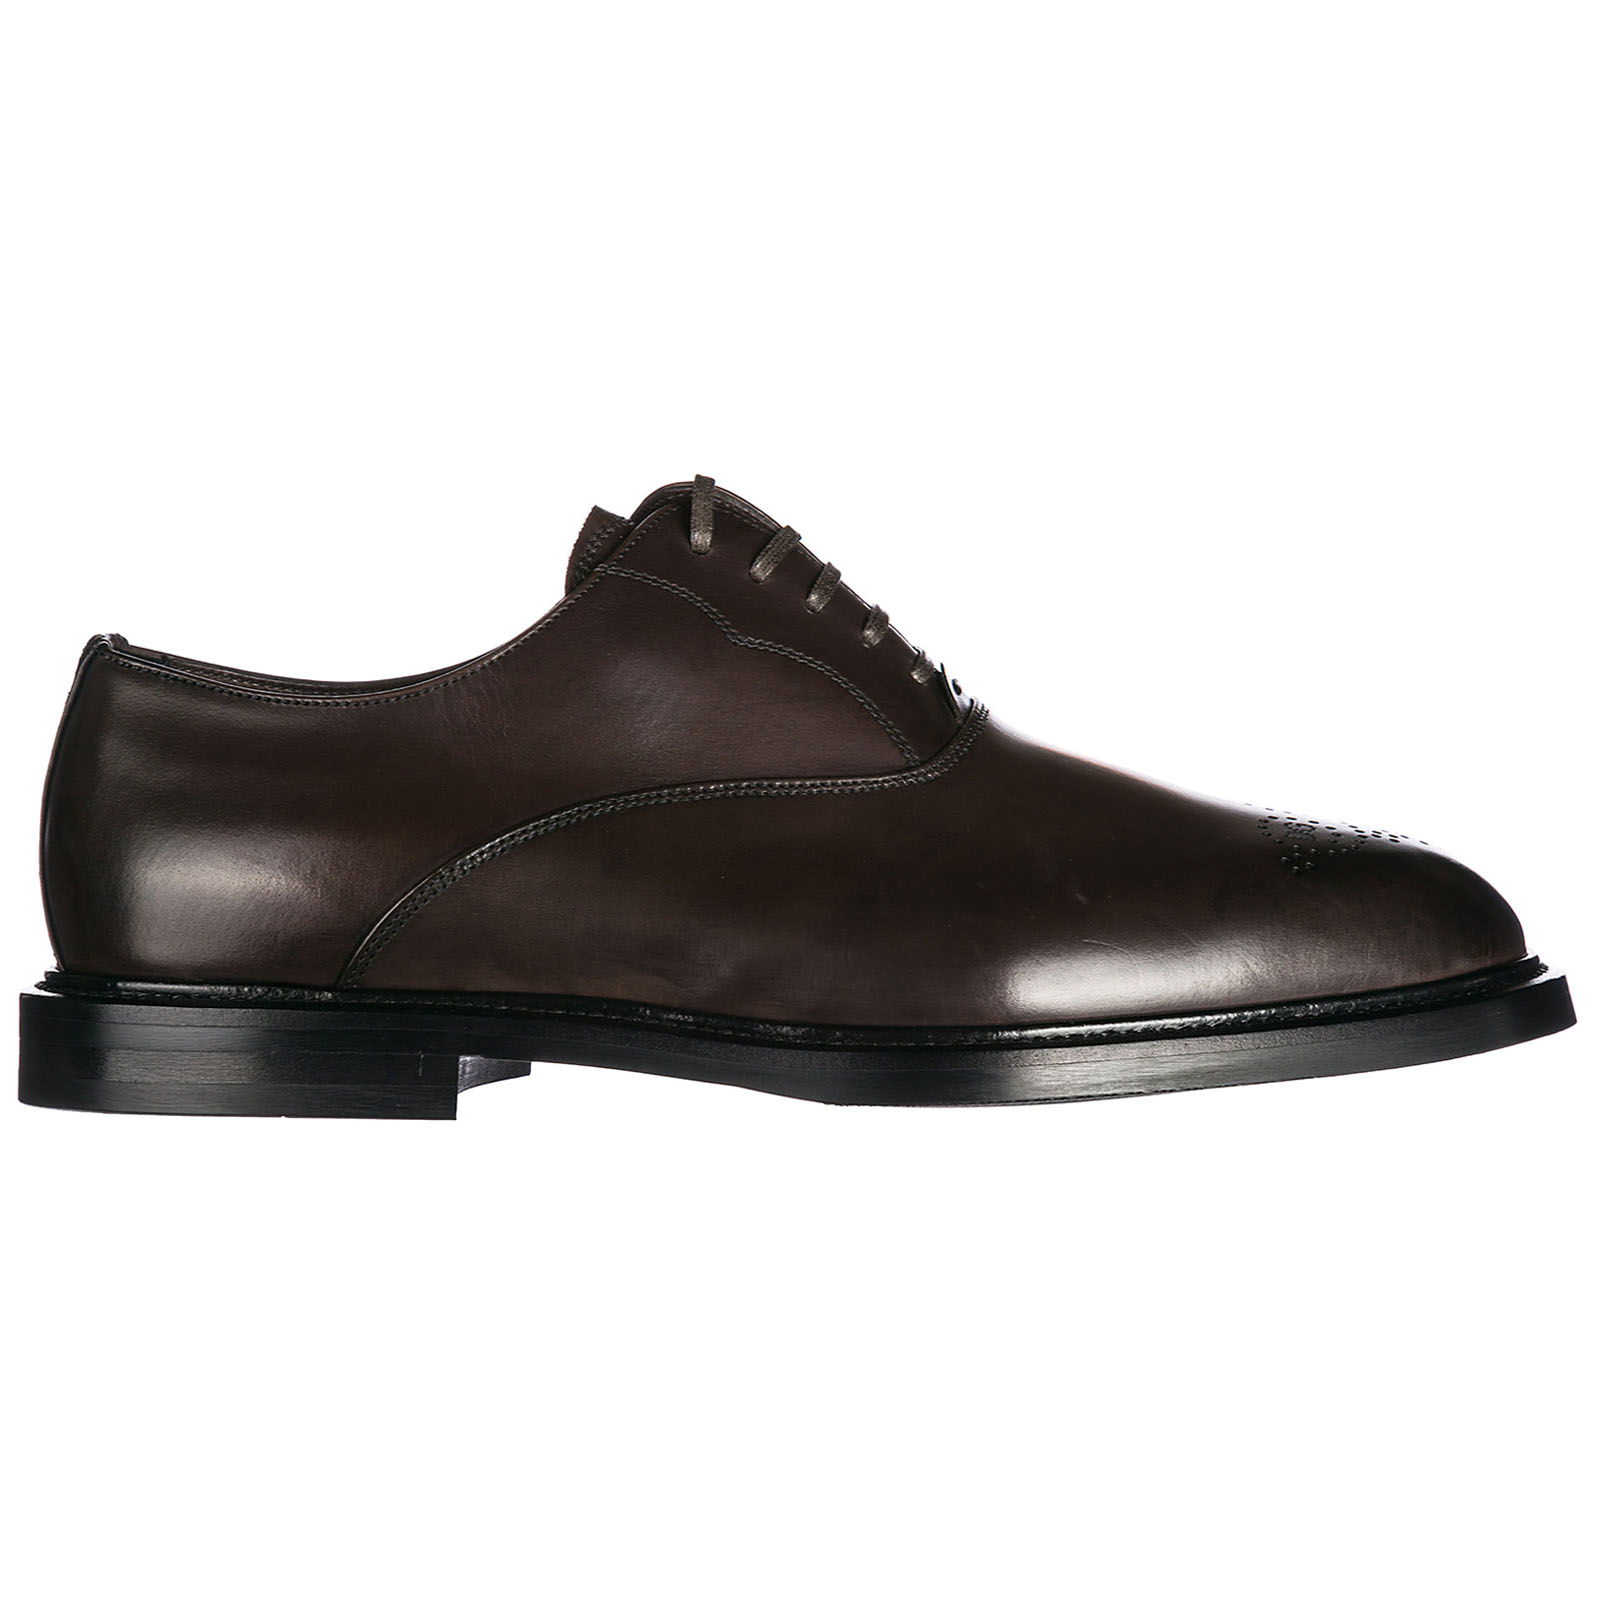 Men's classic leather lace up laced formal shoes francesina brogue